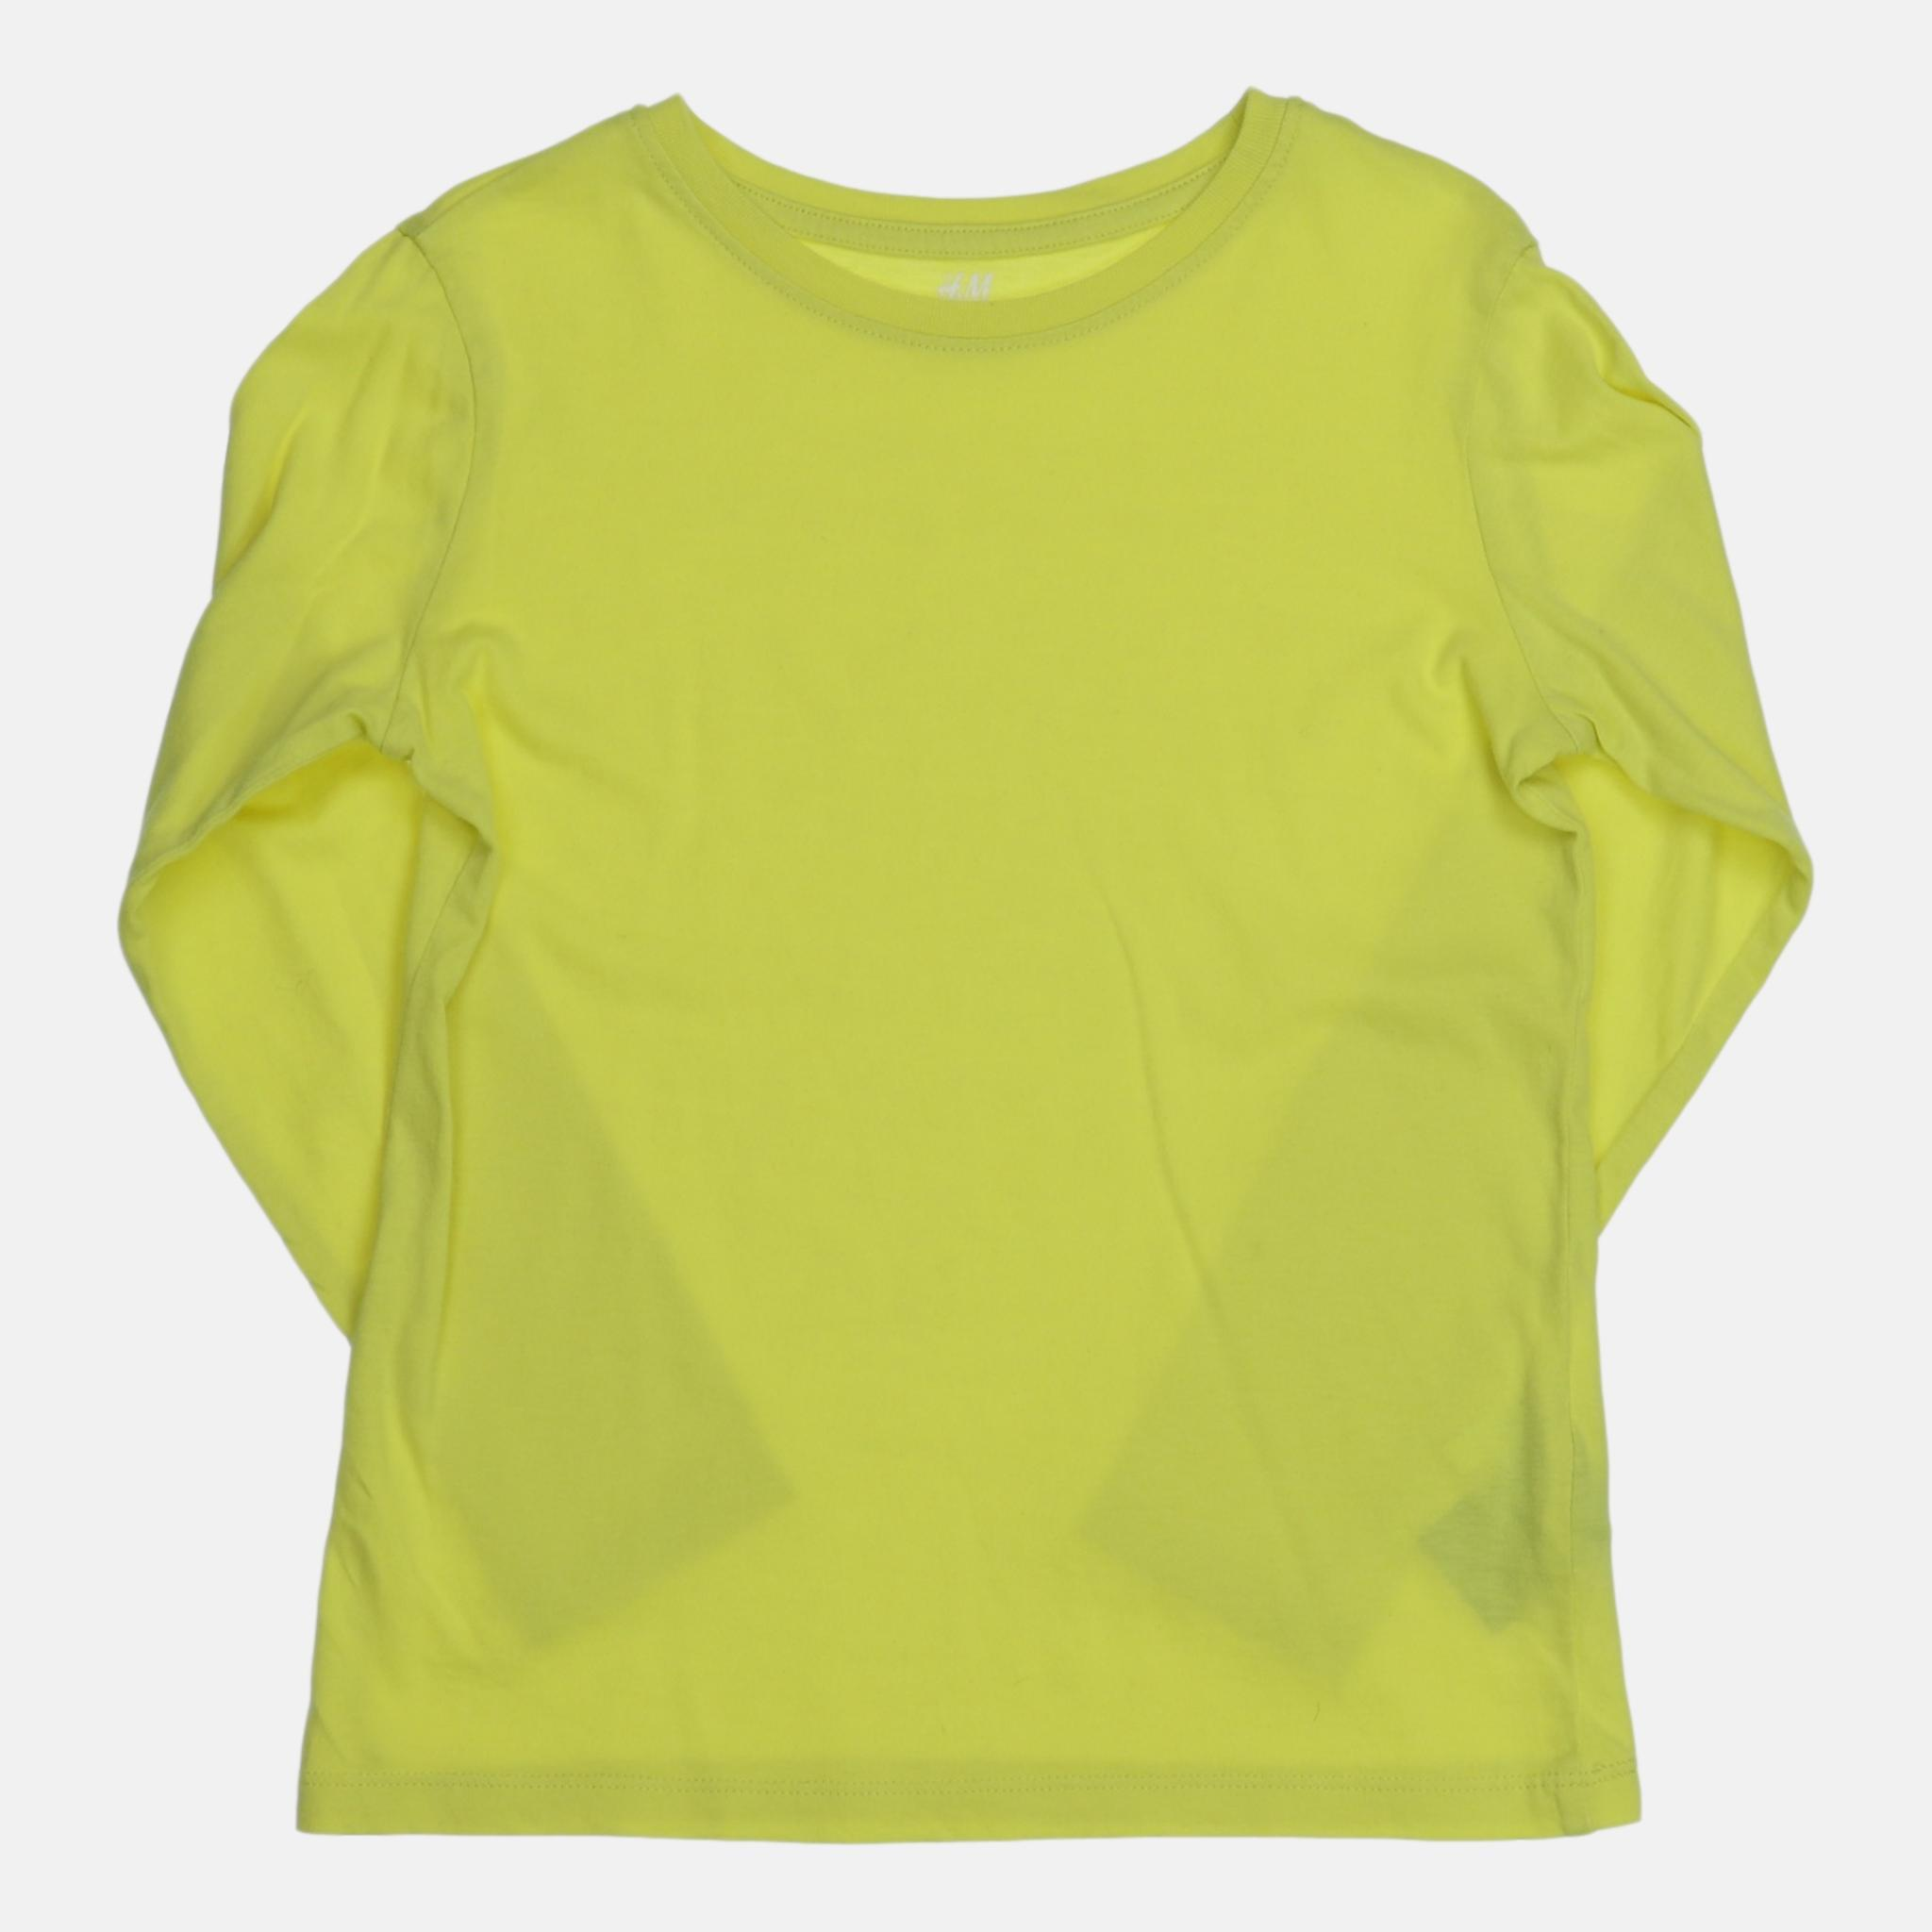 Long Sleeve T-Shirt, 7-8 Years